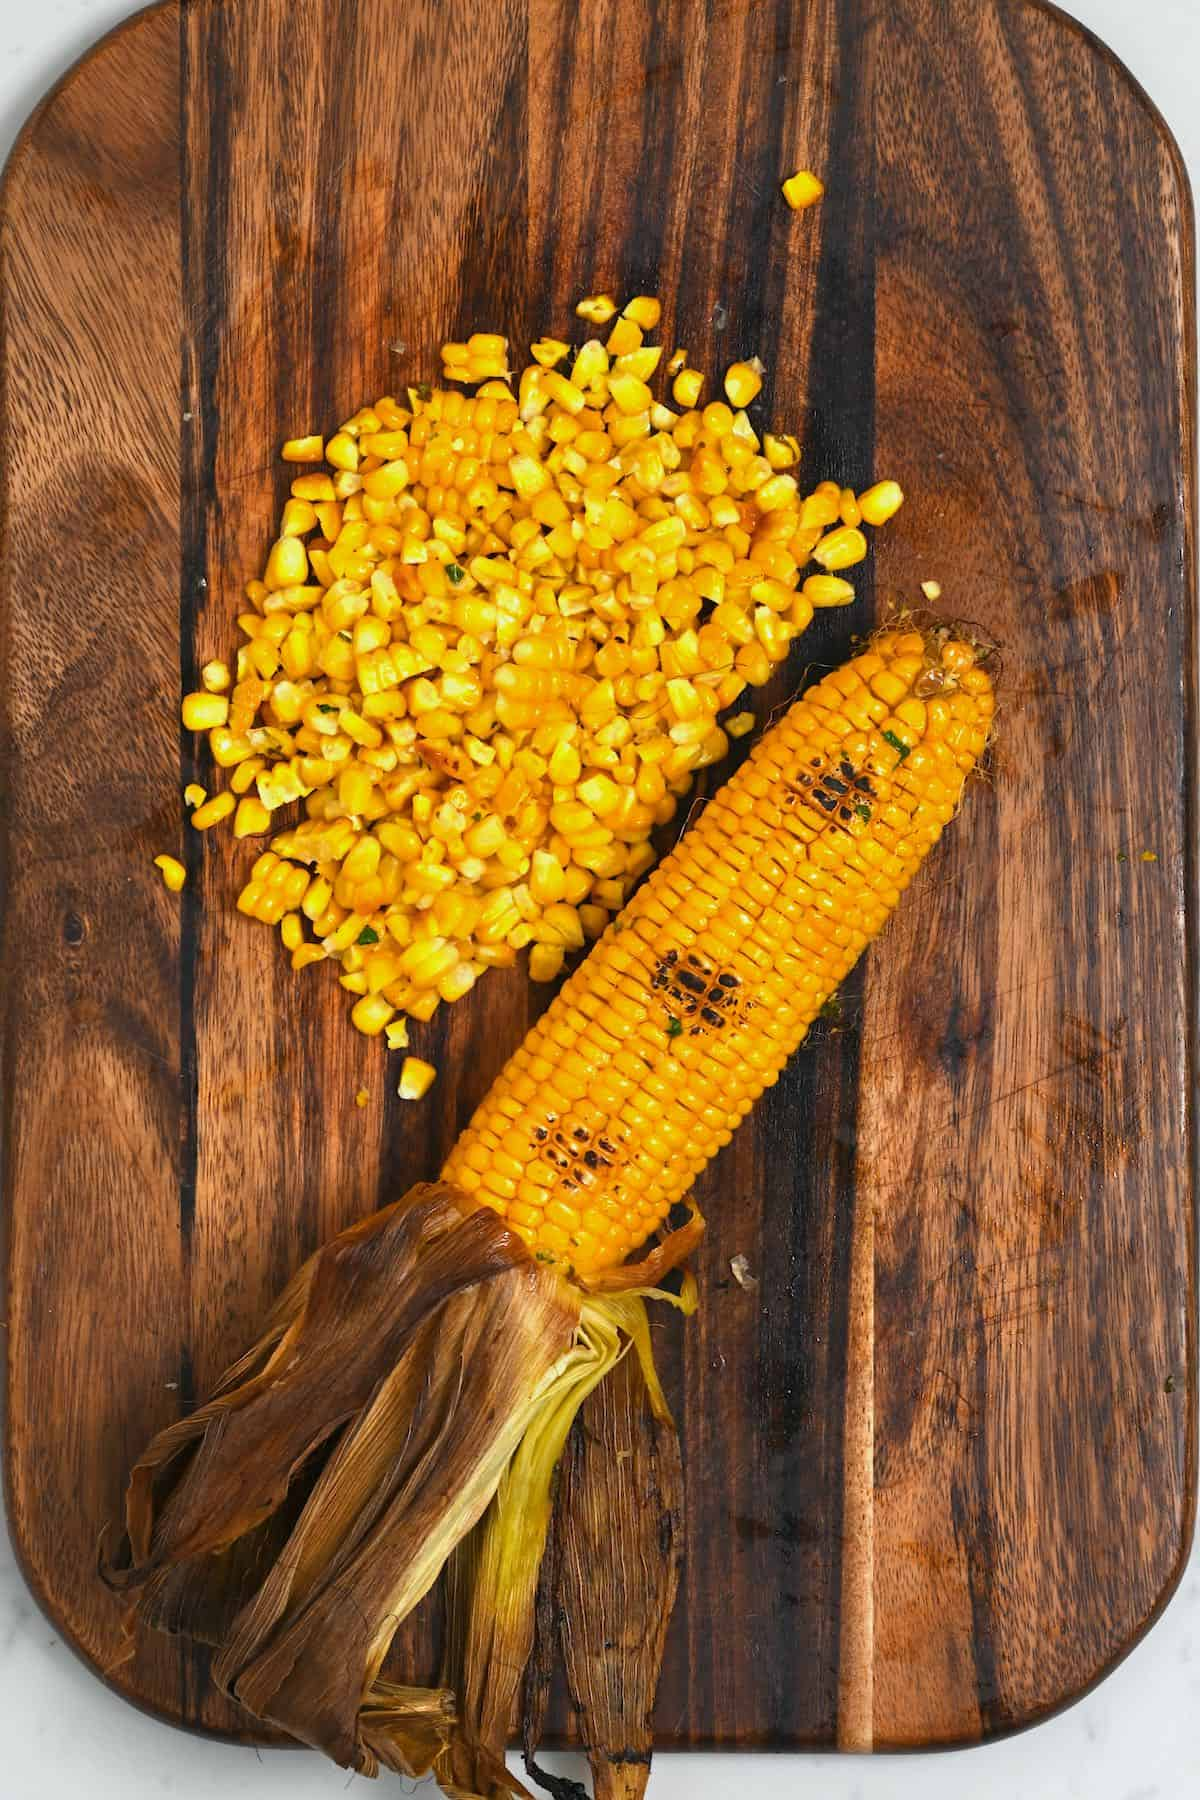 Oven-roasted corn on a cutting board